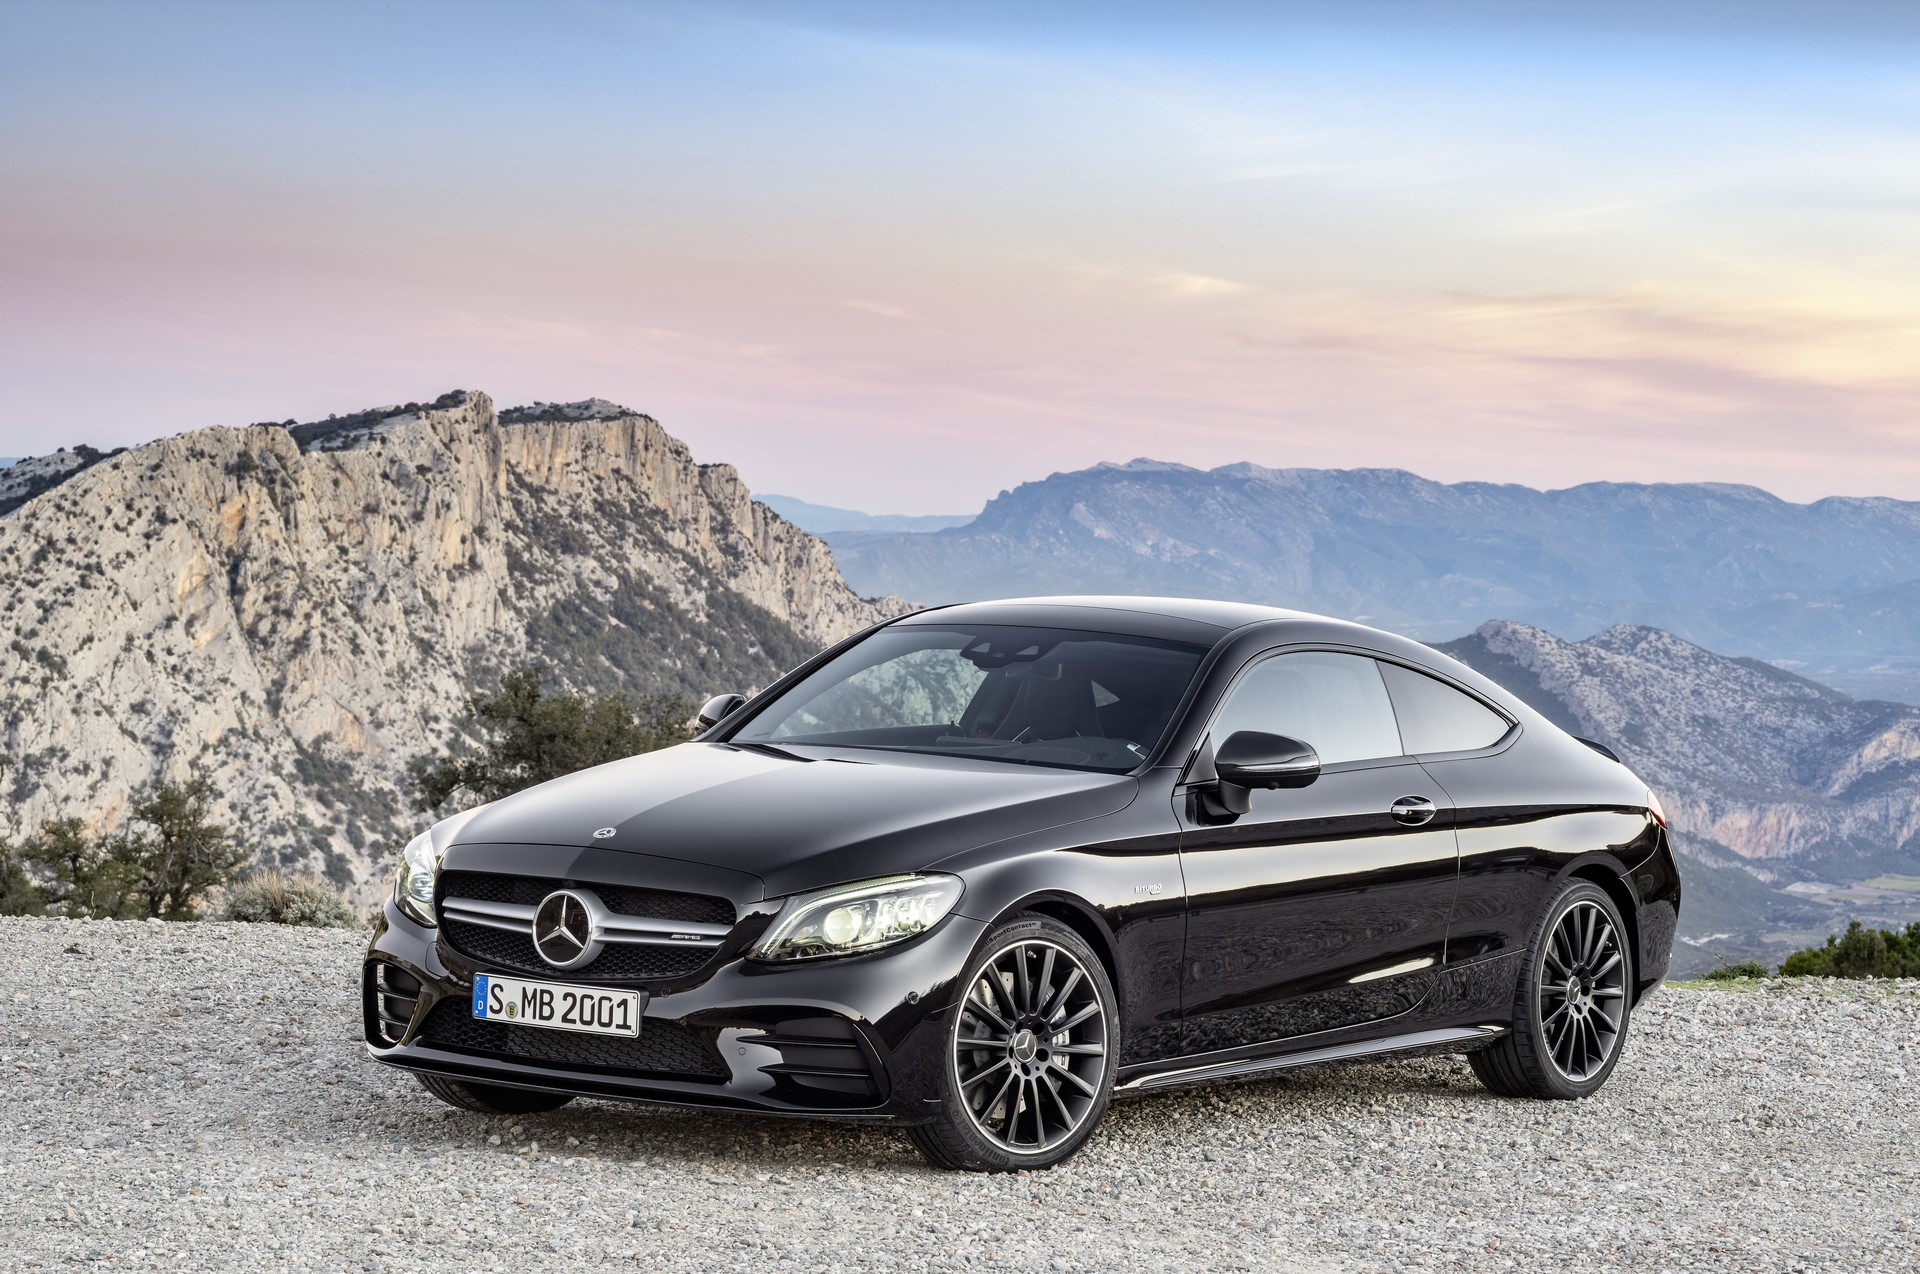 Mercedes C Class Coupe And Cabriolet Facelift Vehiclejar Blog